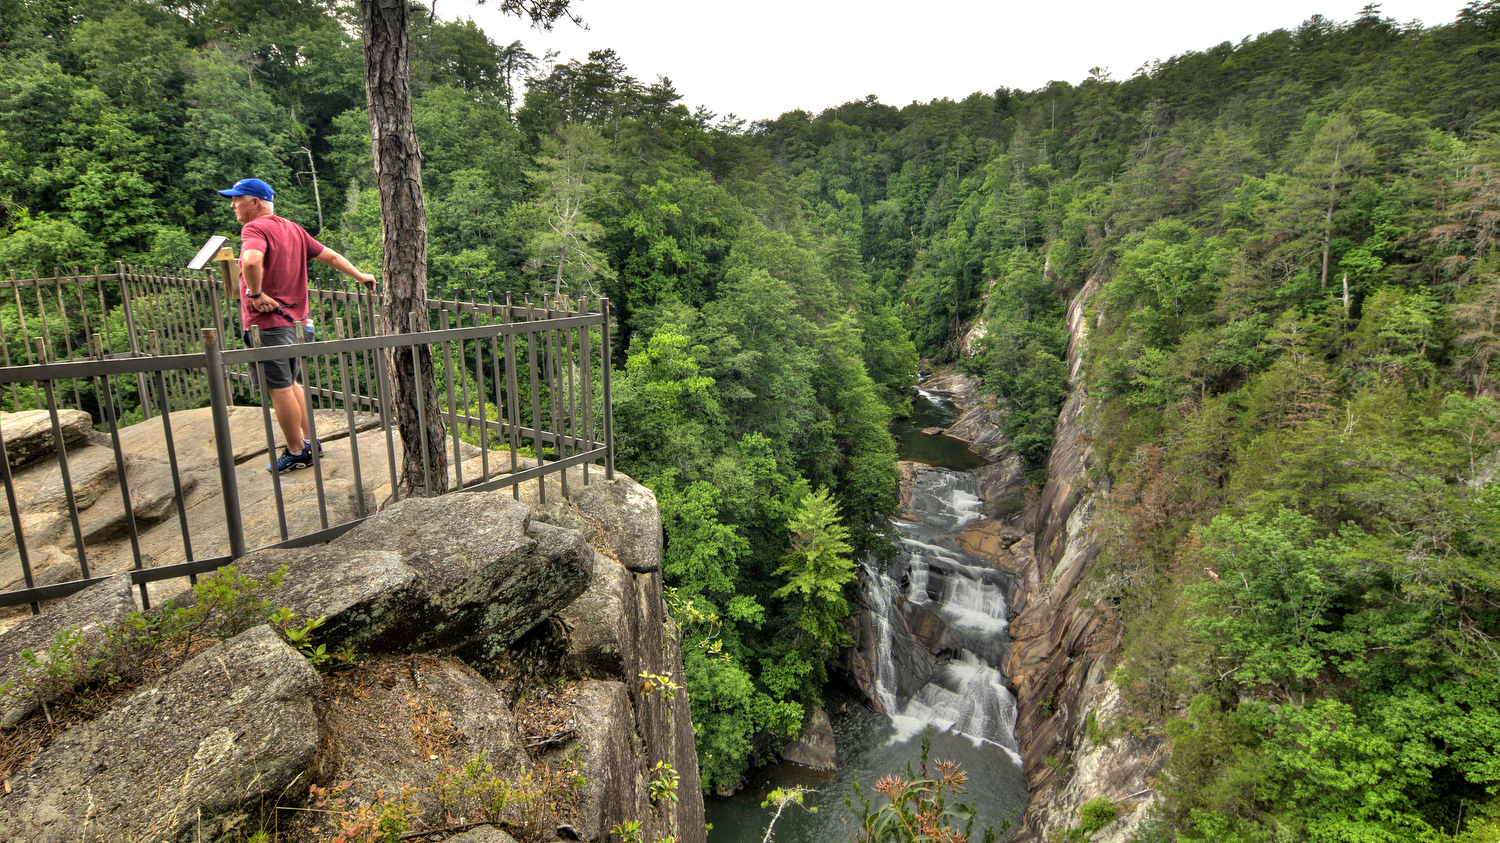 View from the North Rim Overlook into the gorge at Tallulah Gorge State Park in Tallulah Falls, GA on Monday, June 12, 2017. Copyright 2017 Jason Barnette